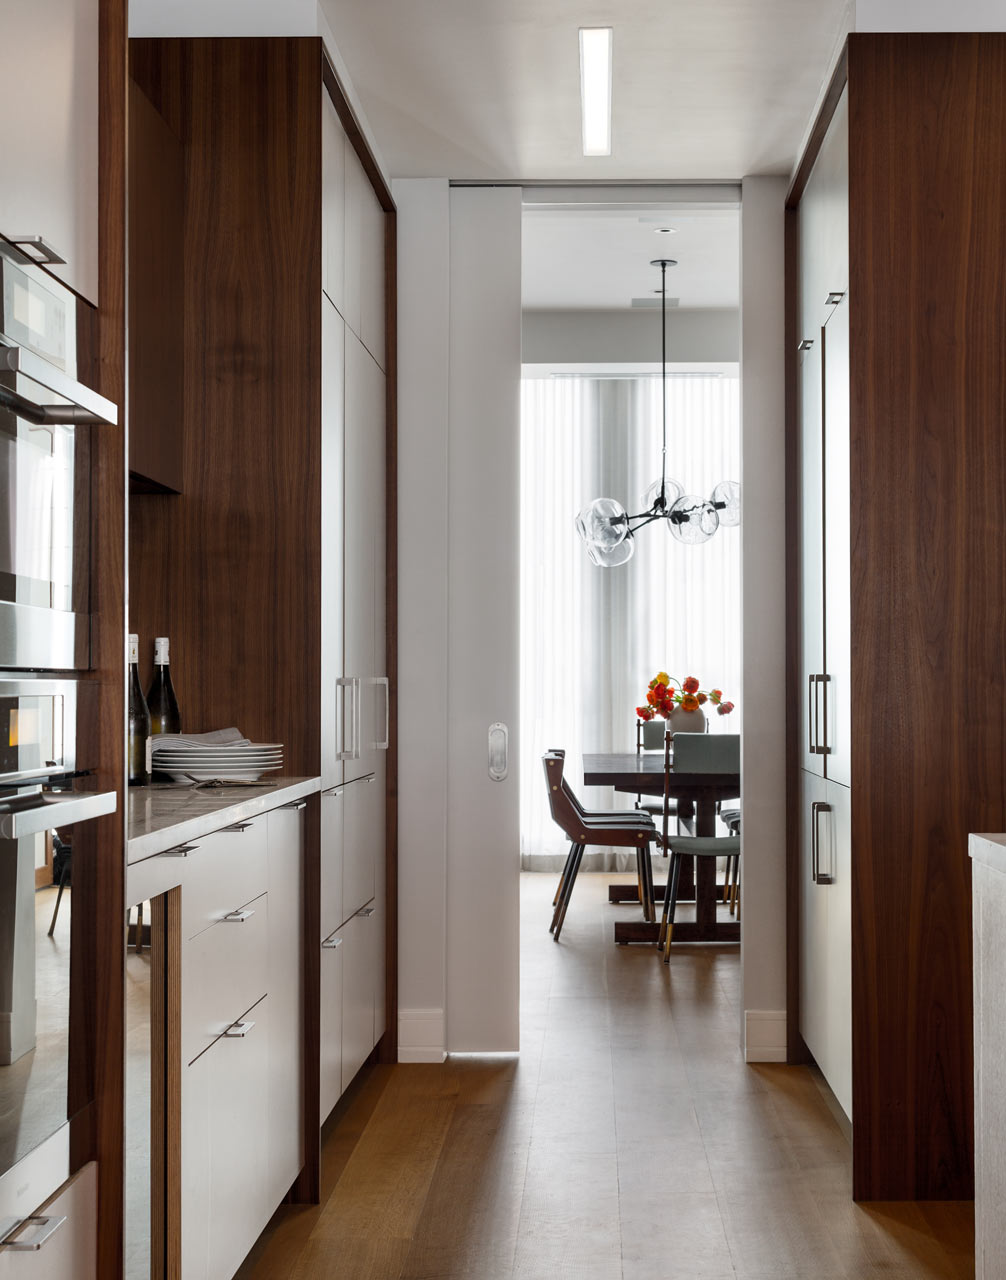 66-9th-Ave-EcoFriendly-Apt-6-kitchen-passageway